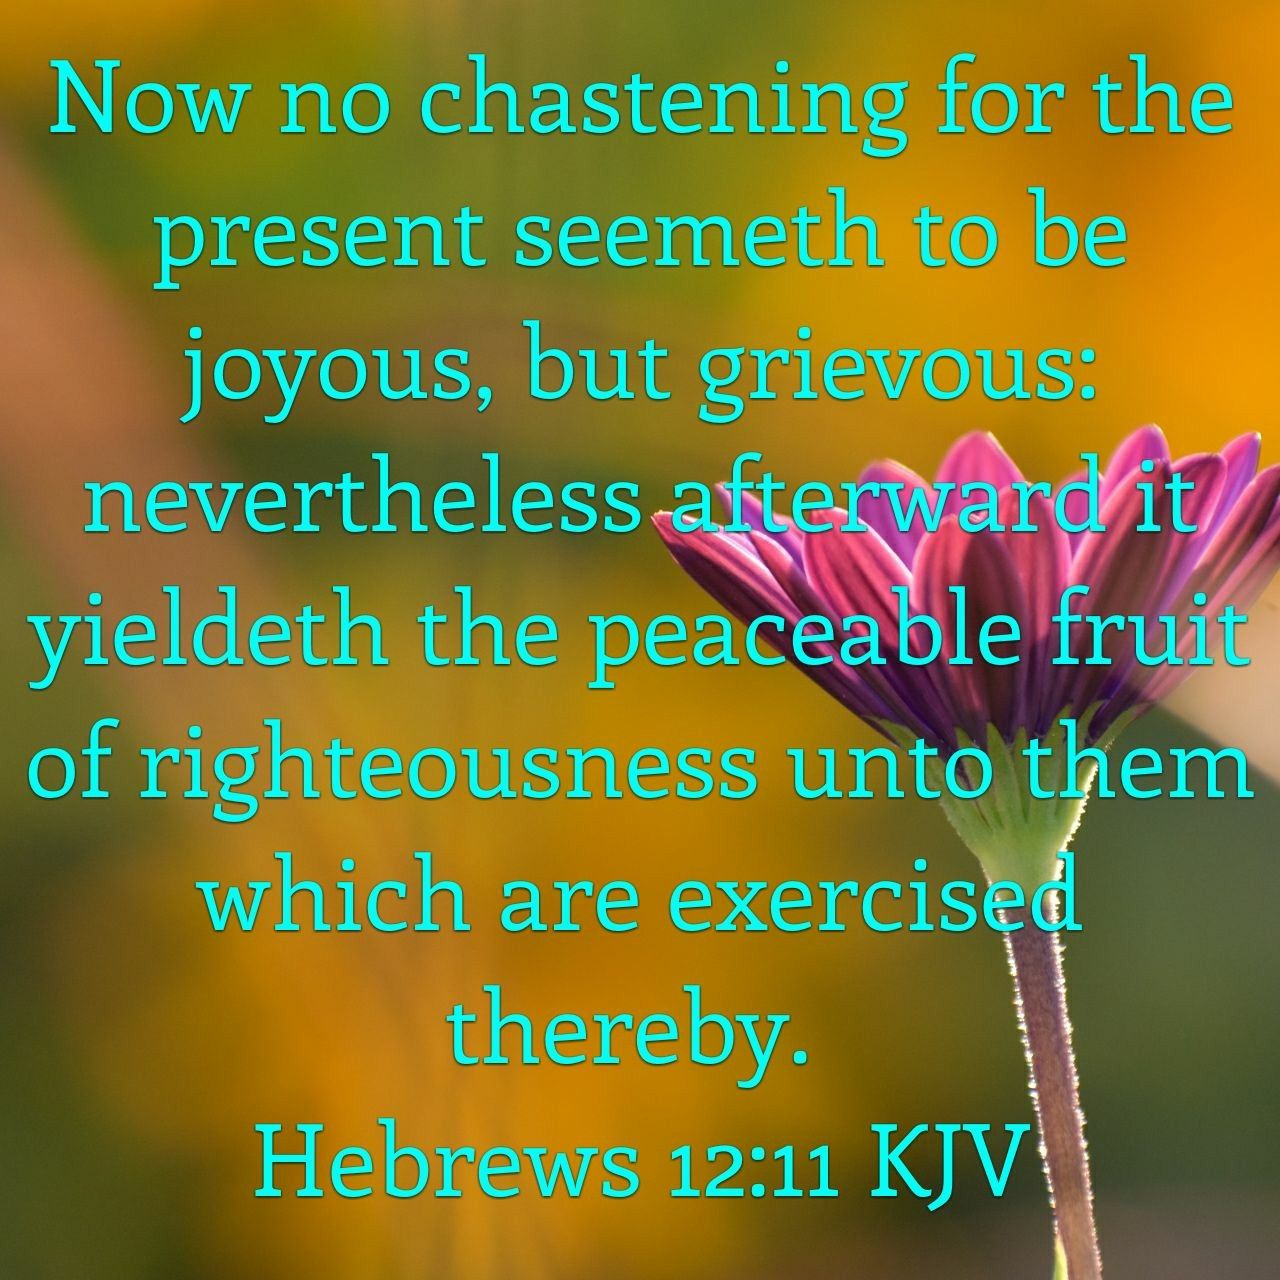 Hebrews 12:11 King James KJV | Bible scriptures, Hebrews 12, Kjv